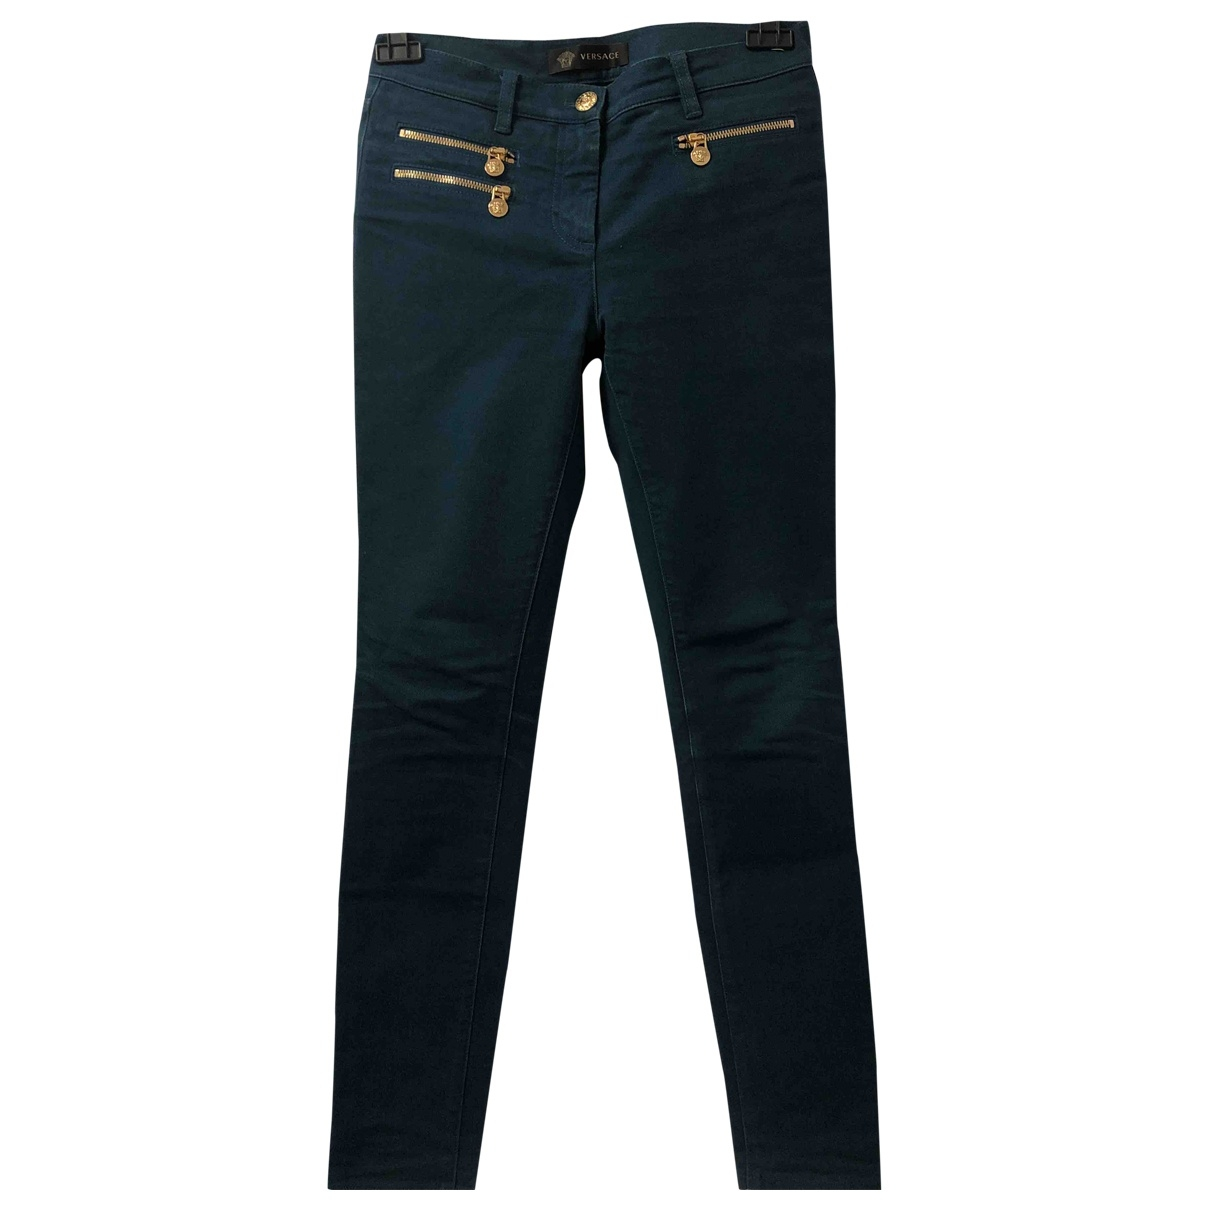 Versace \N Green Cotton - elasthane Jeans for Women 27 US